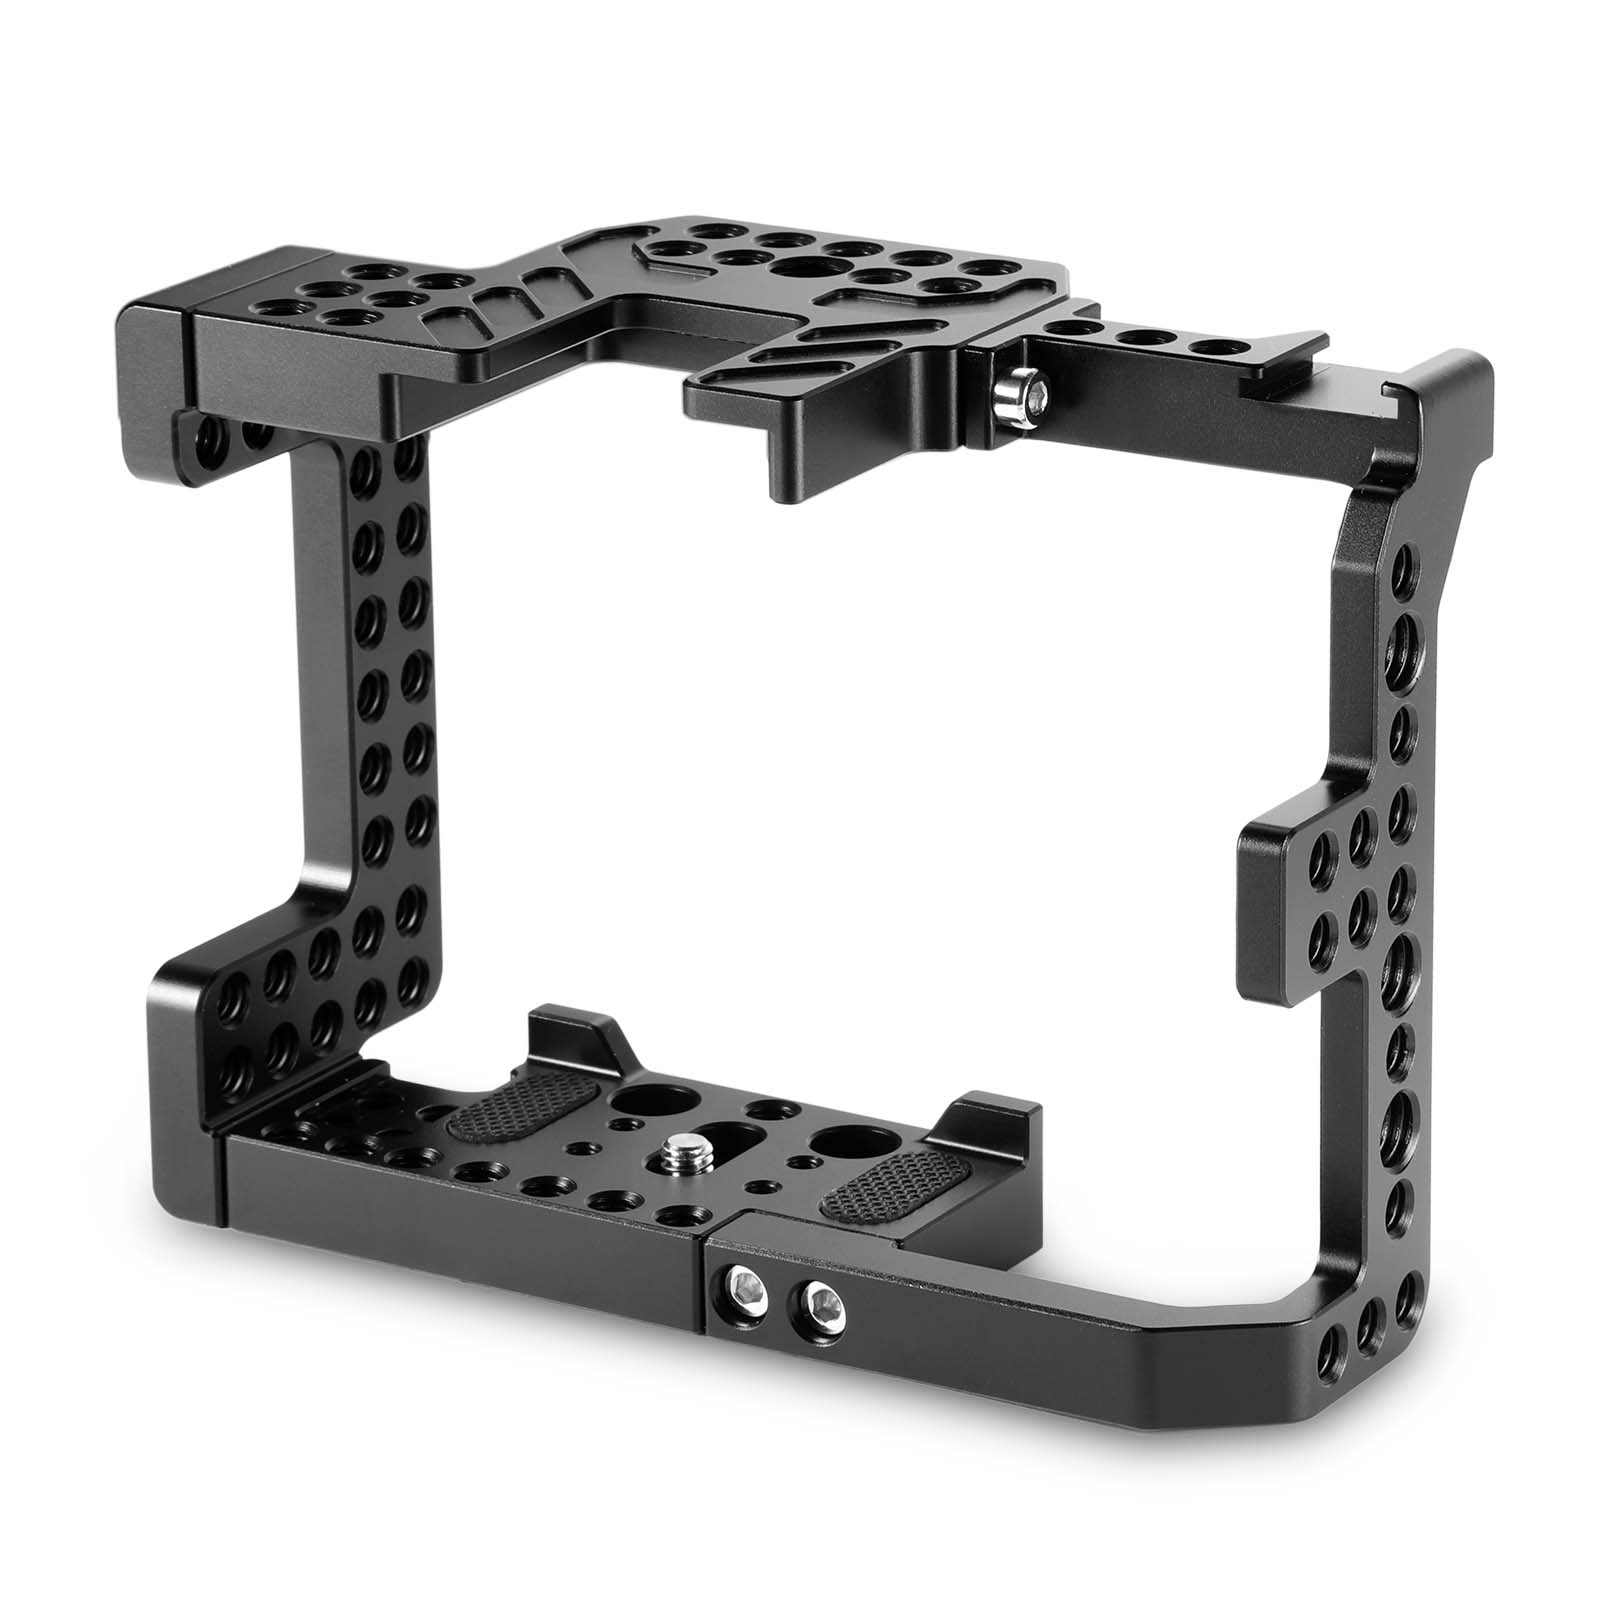 SmallRig Aluminum Alloy Camera Cage for SONY A7II A7RII A7SII ILCE 7M2 ILCE 7RM2 ILCE 7SM2